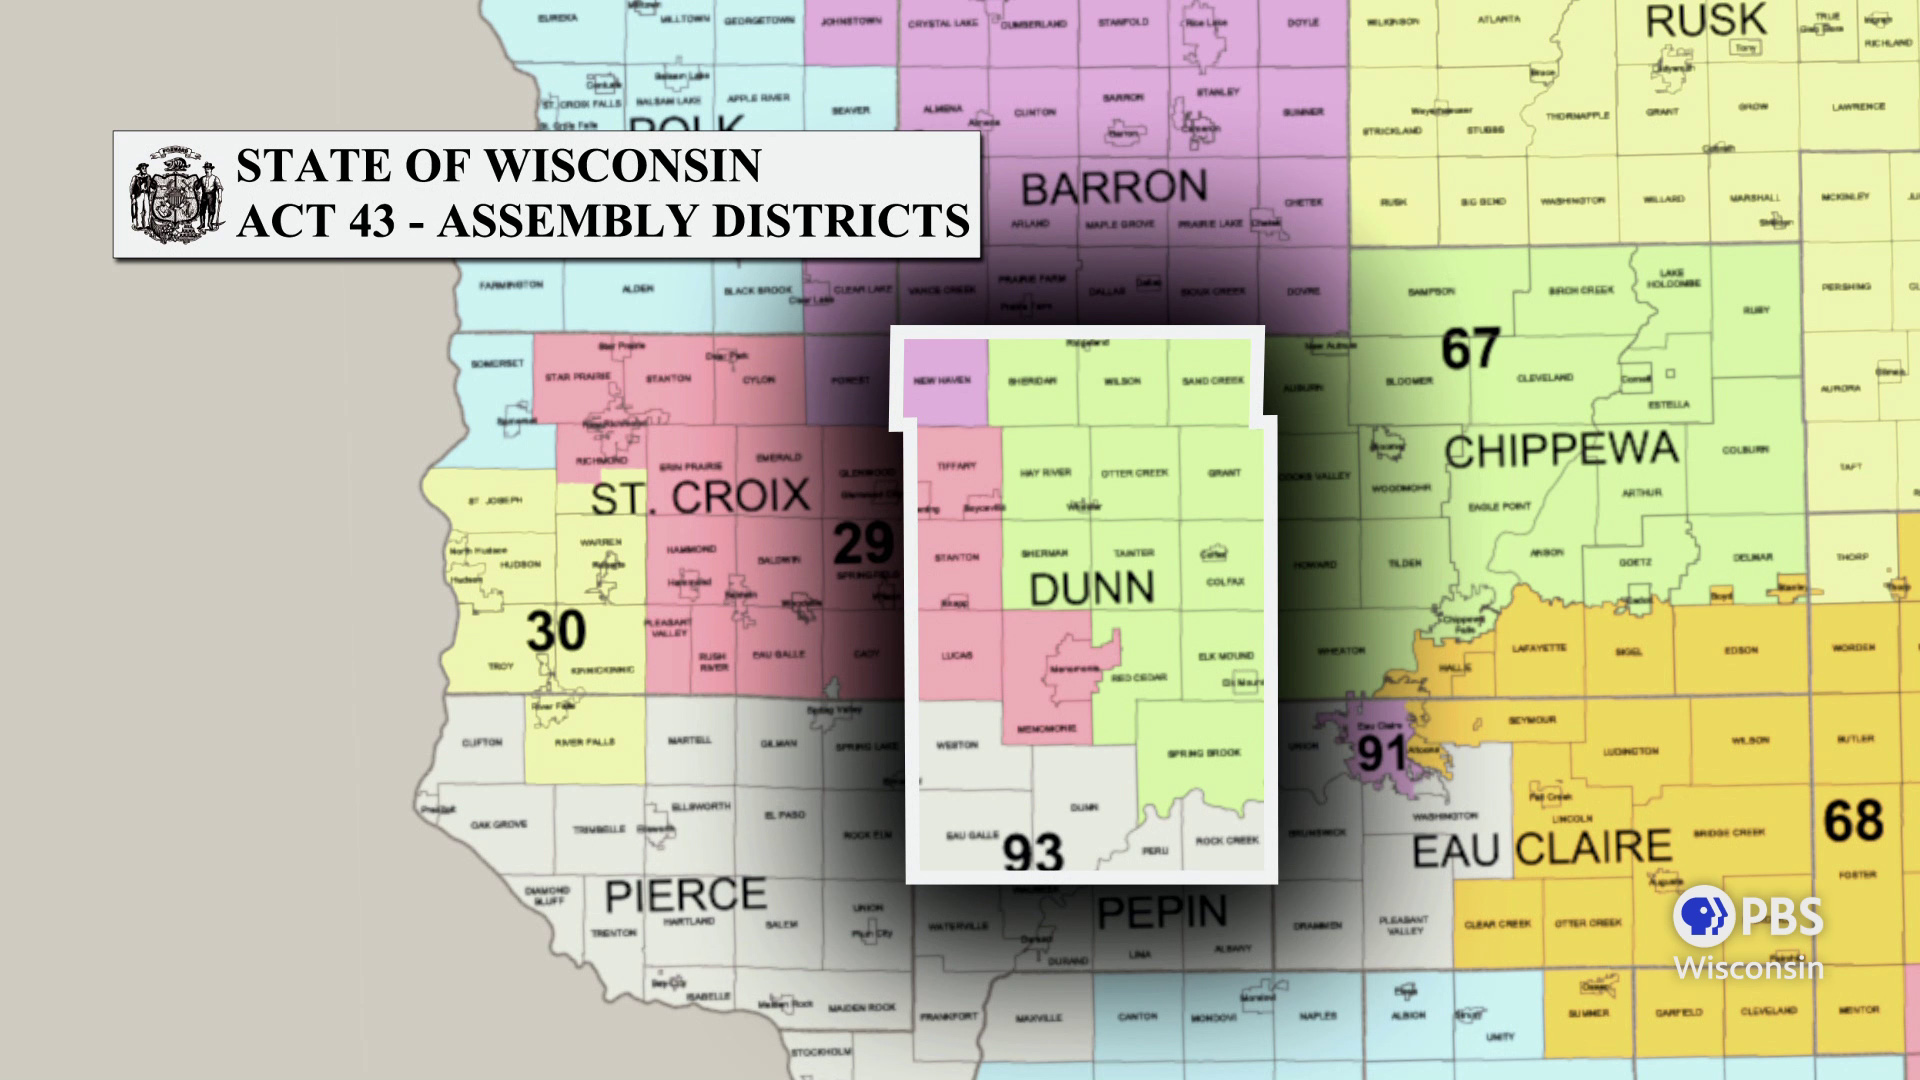 Dunn County is highlighted in a map showing Wisconsin Assembly districts defined in 2011 Act 43.